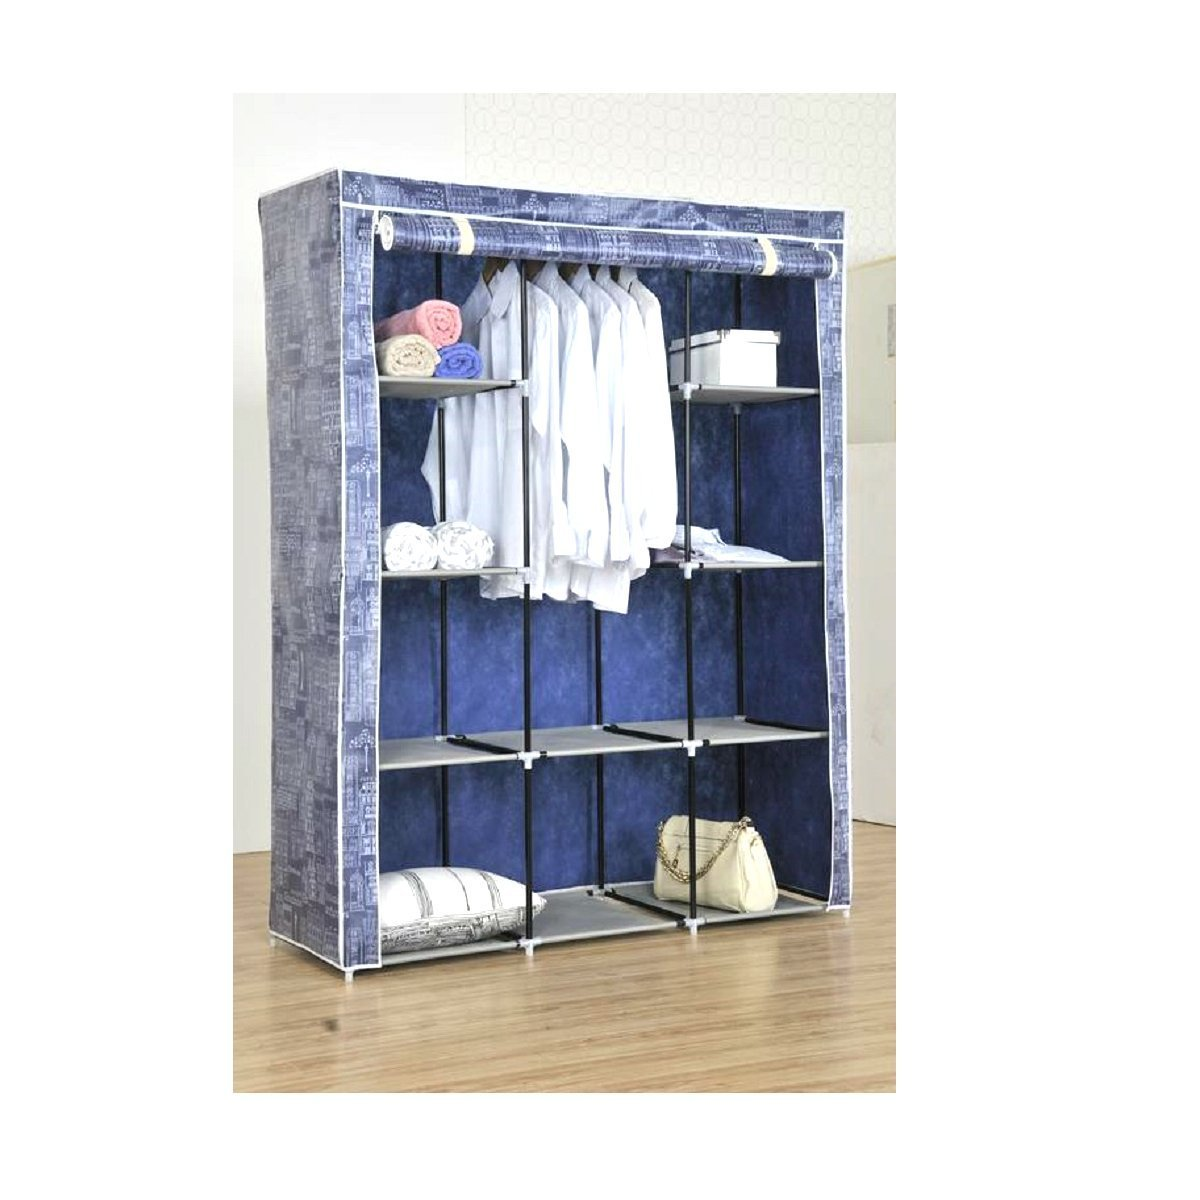 66.5 x 51.5 x 18 Inches Uniware Large PEVA Material Tall Roll Up Clothes Closet with Dustproof Cover Blue FW2887